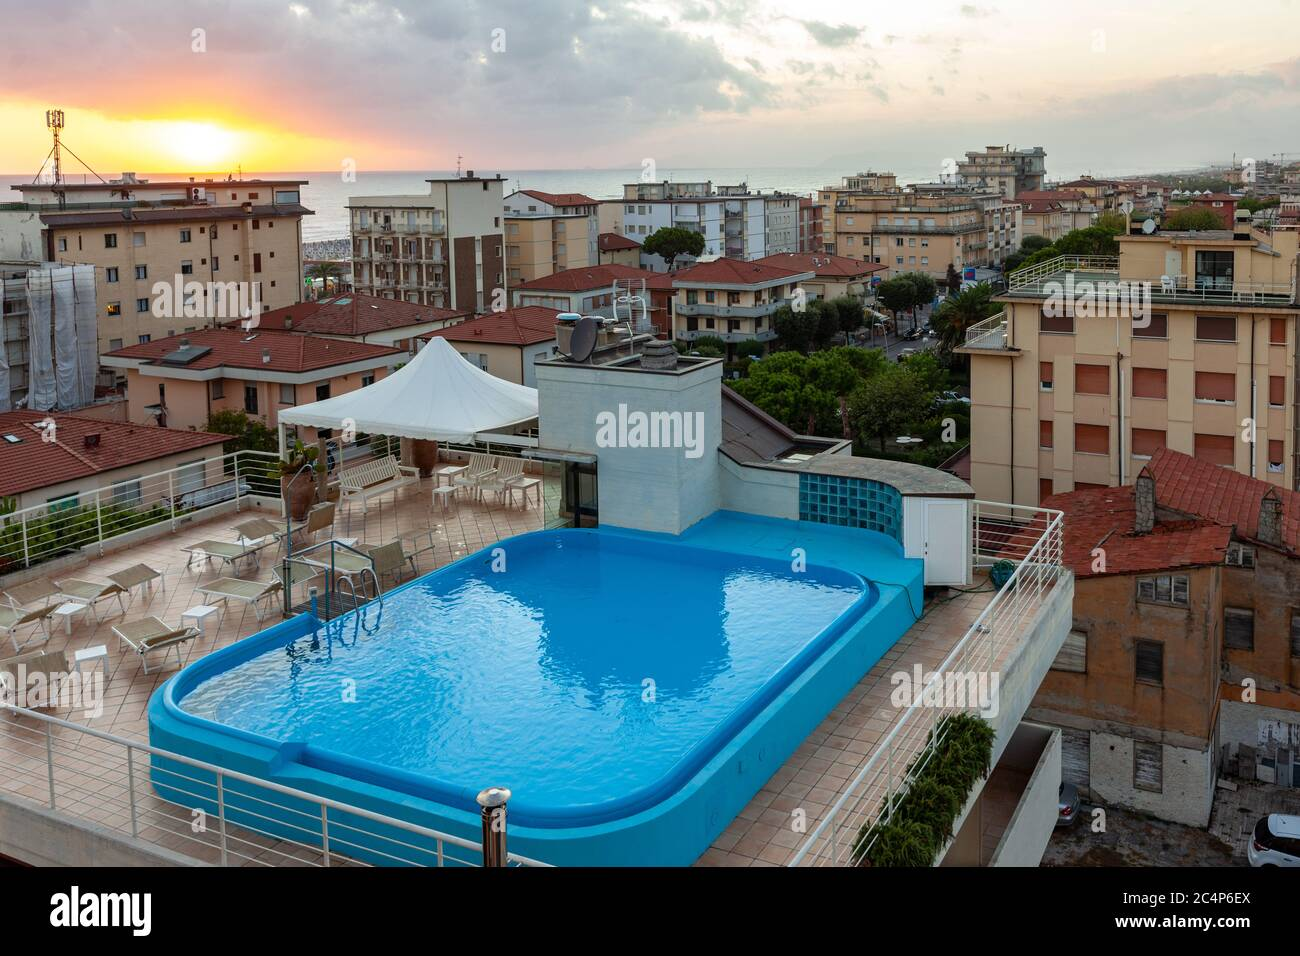 Empty Swimming Pool Abandoned Hotel High Resolution Stock Photography And Images Alamy